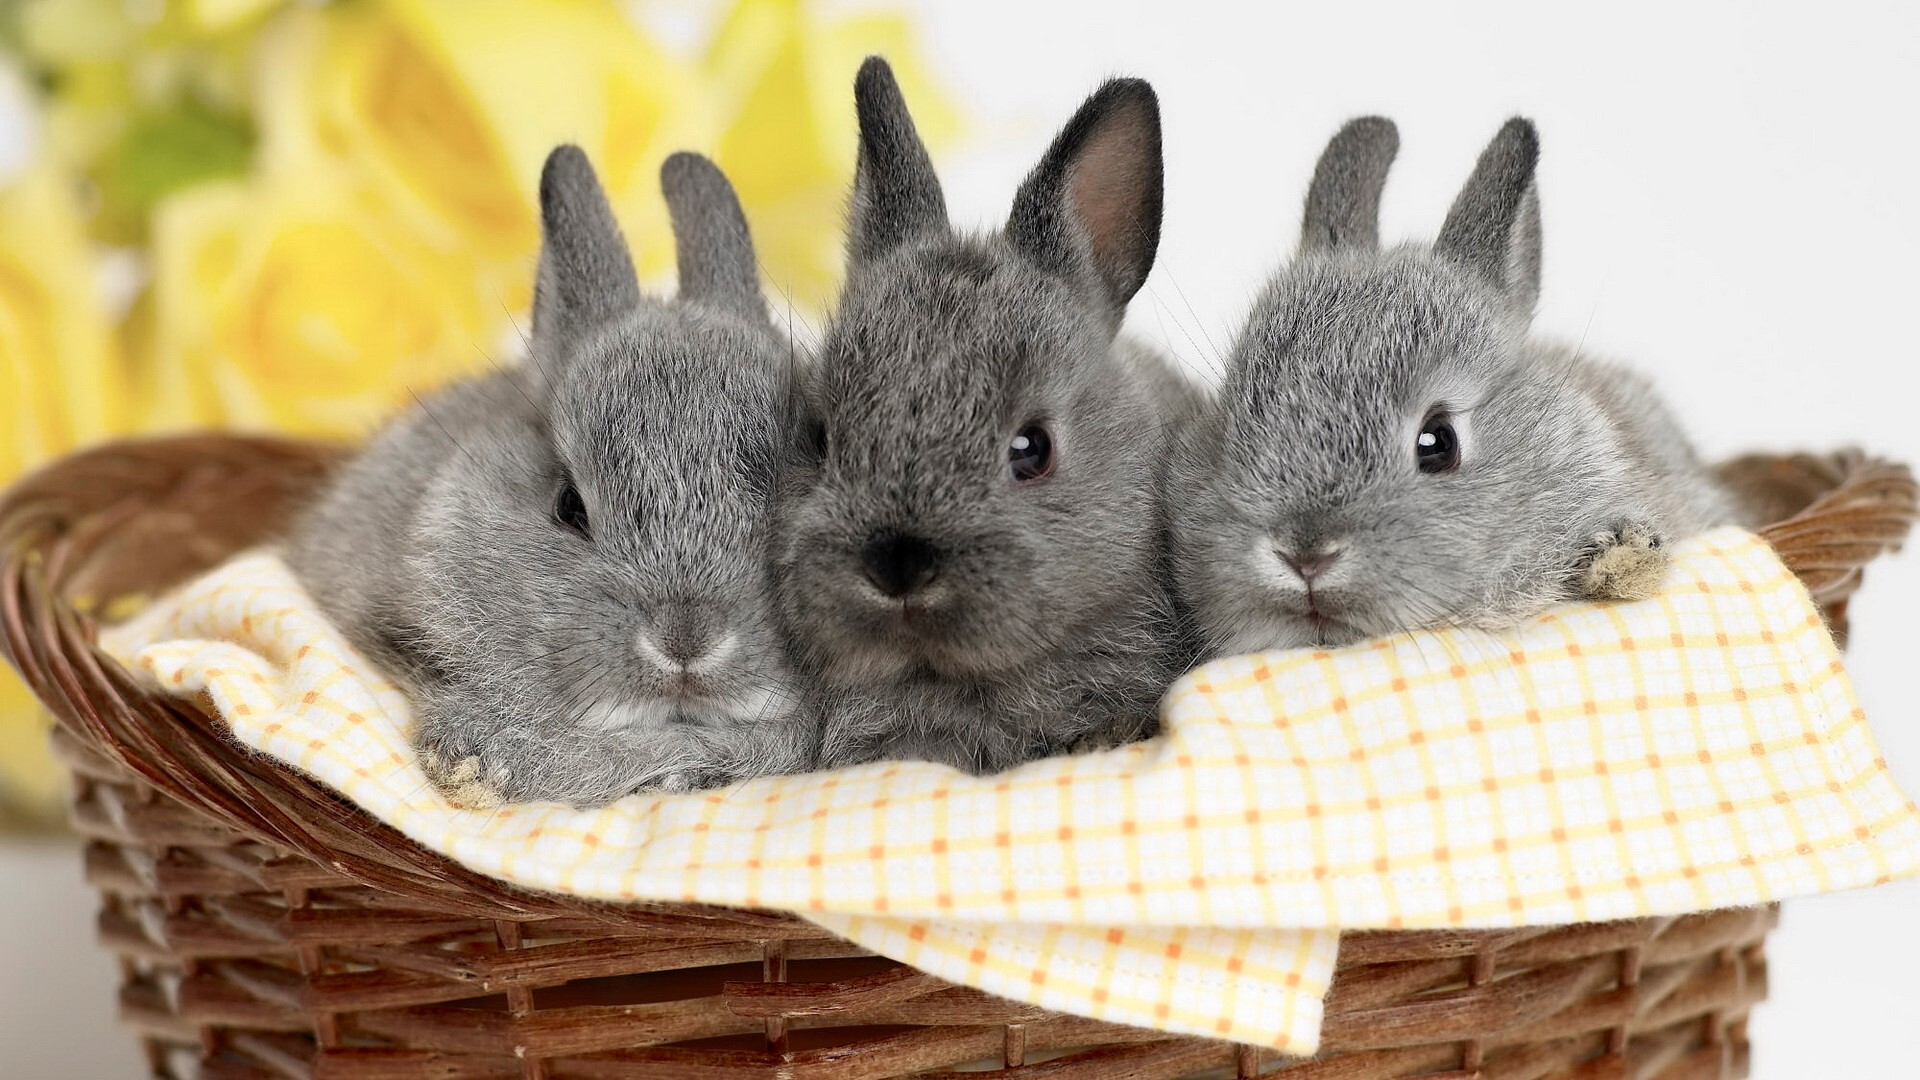 three cute hd rabbit wallpapers free download | hd wallpapers